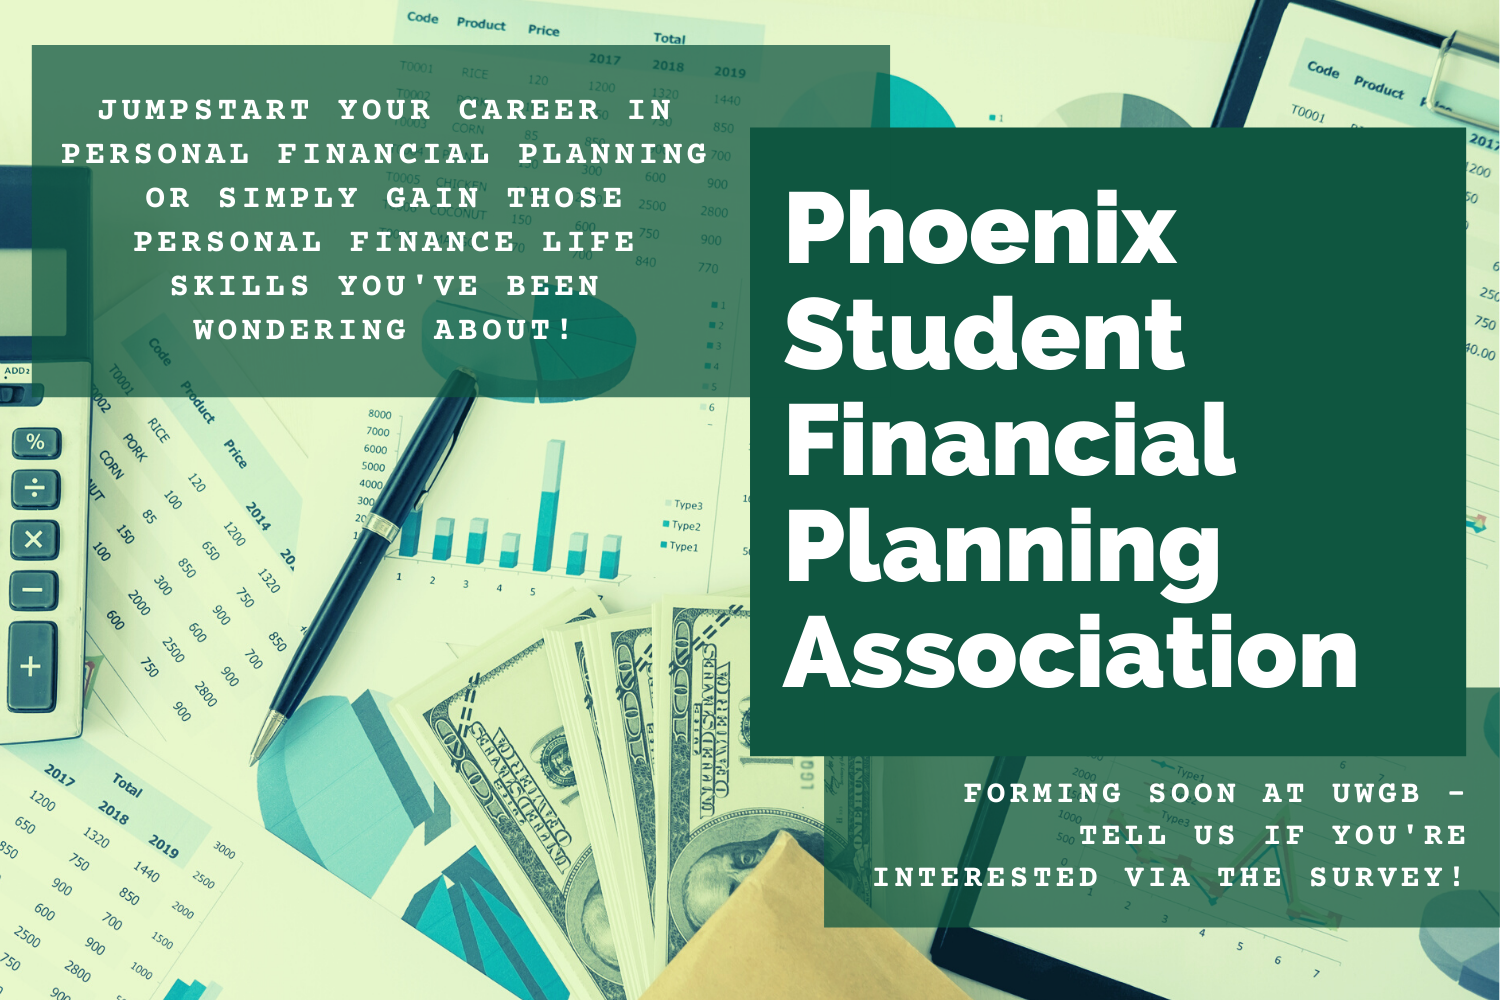 Phoenix student financial planning association